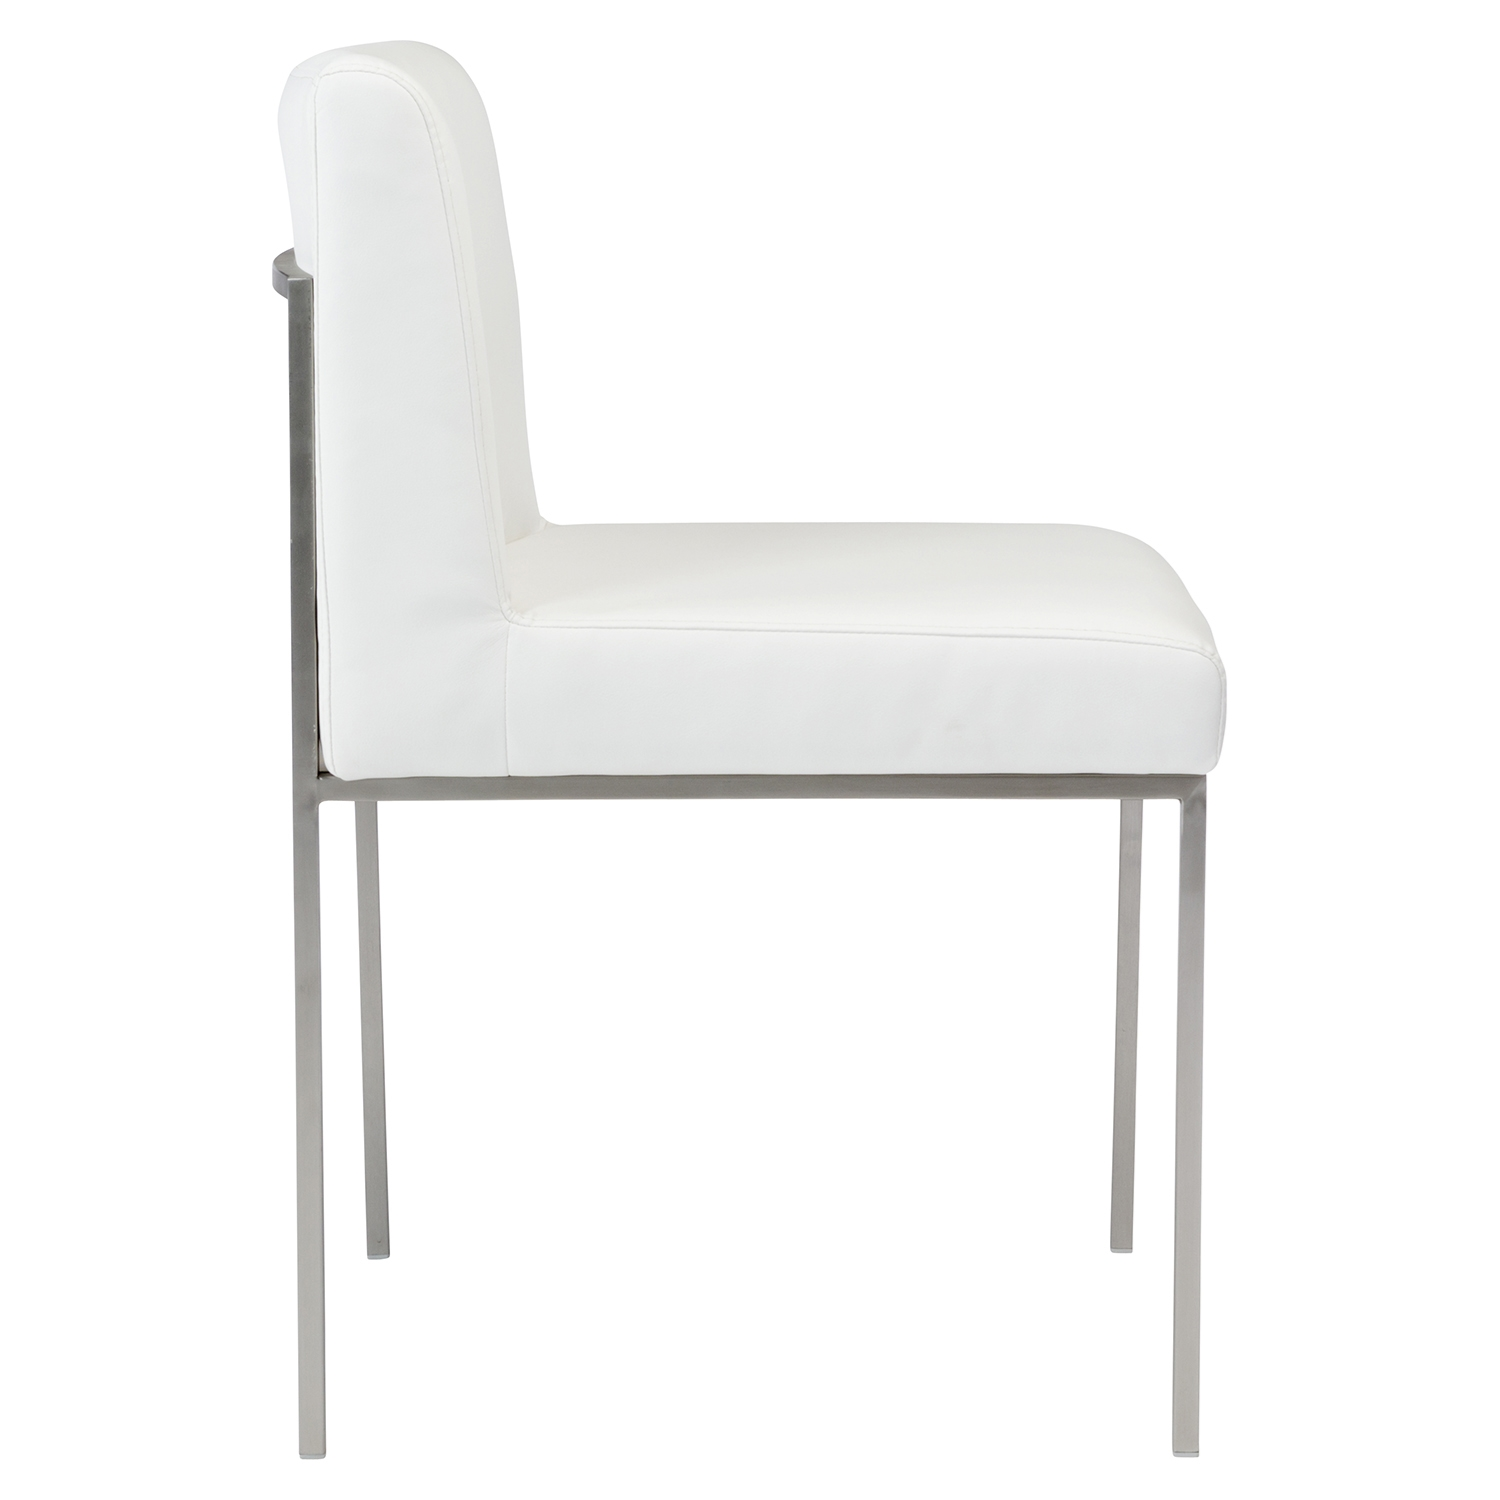 Capo Side Chair - White (Set of 2) - MOES-ER-1194-18